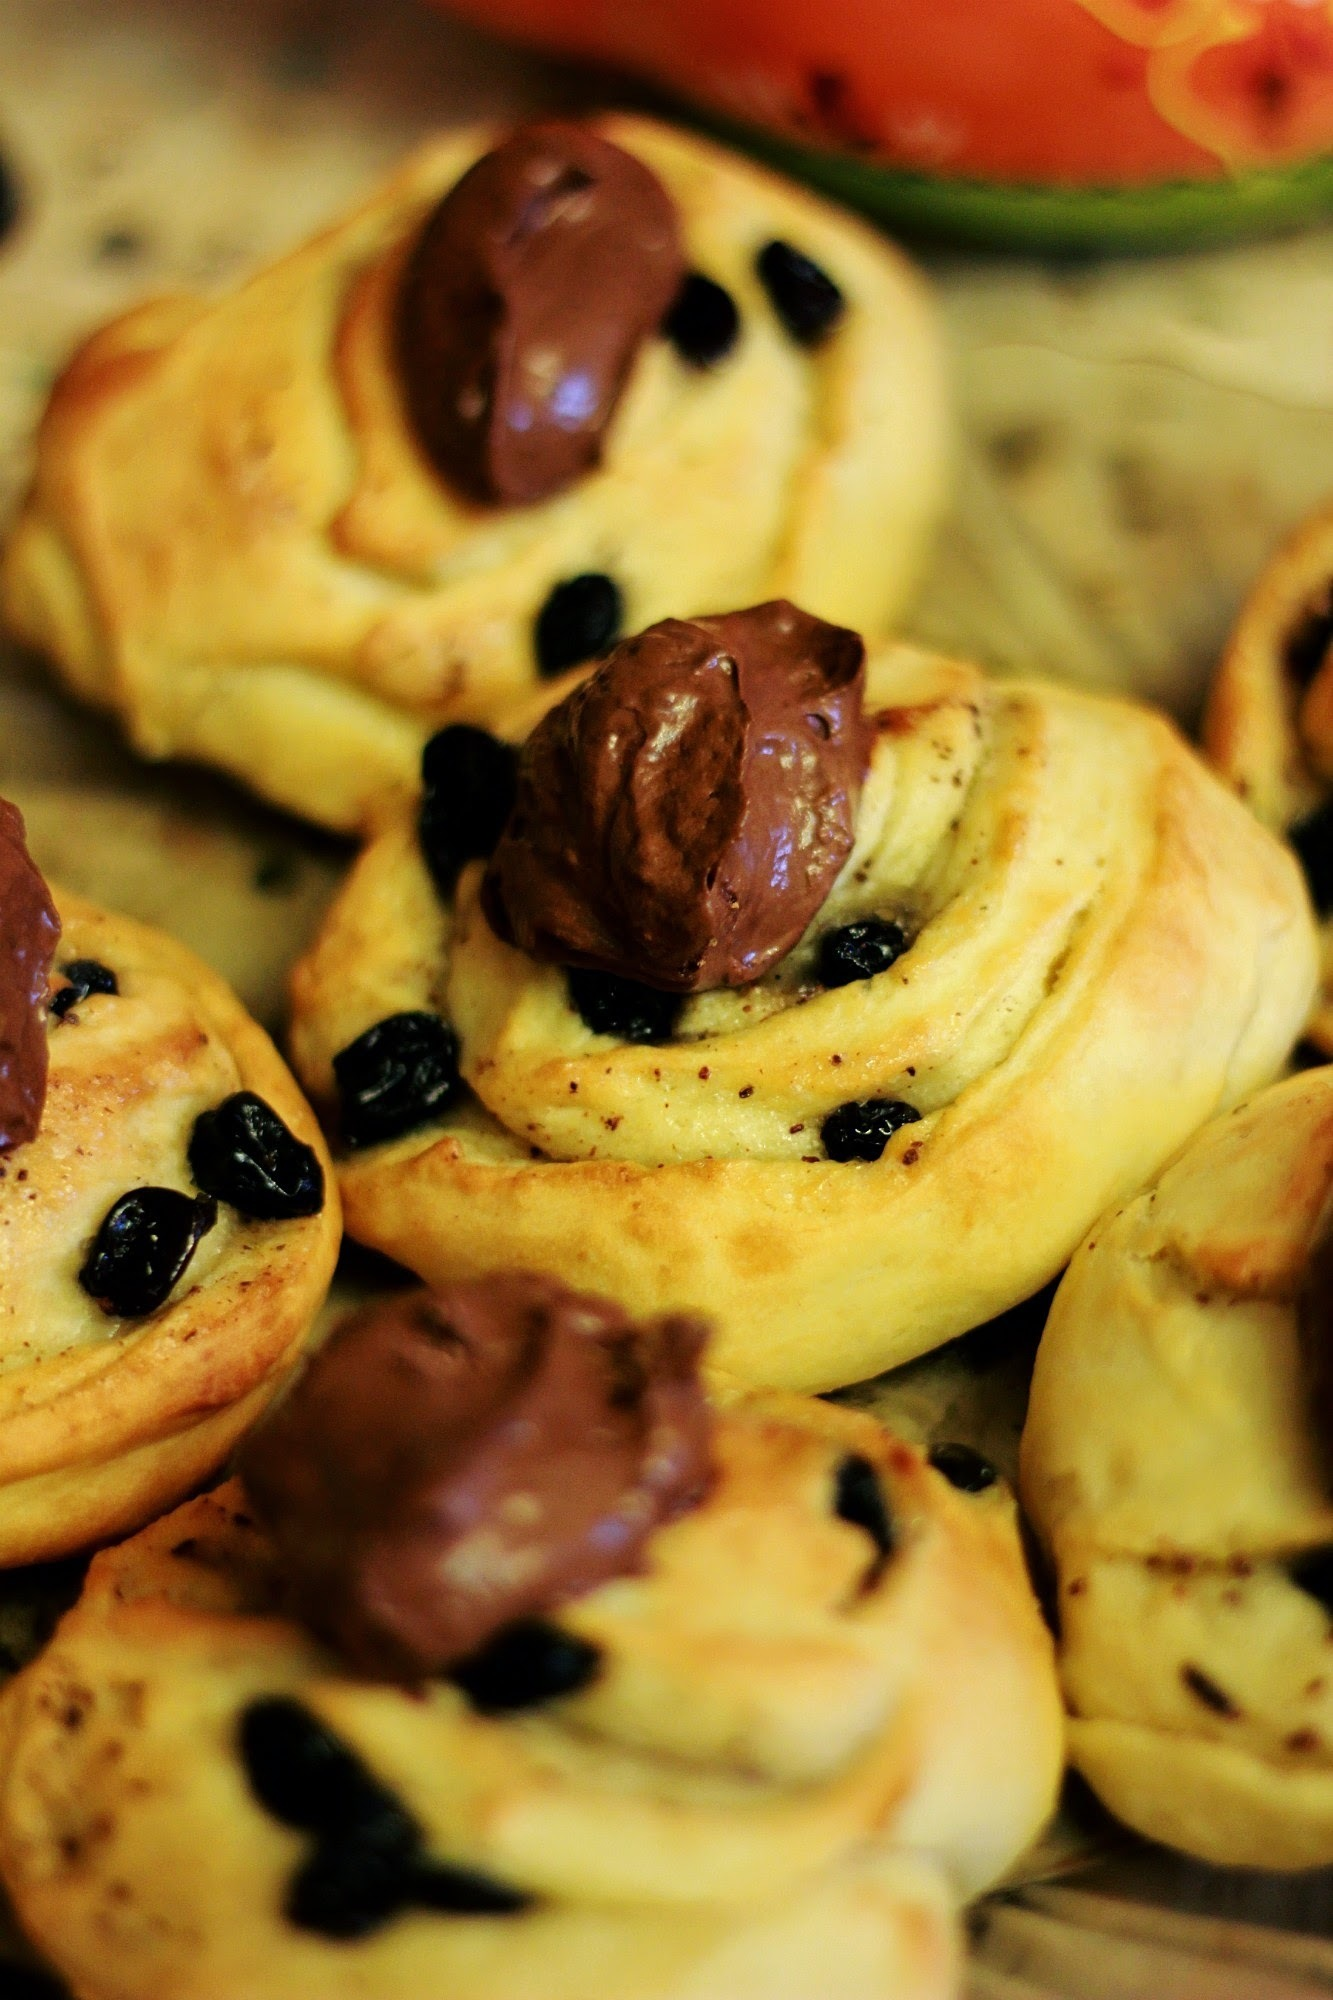 Rolls with cinnamon and raisins